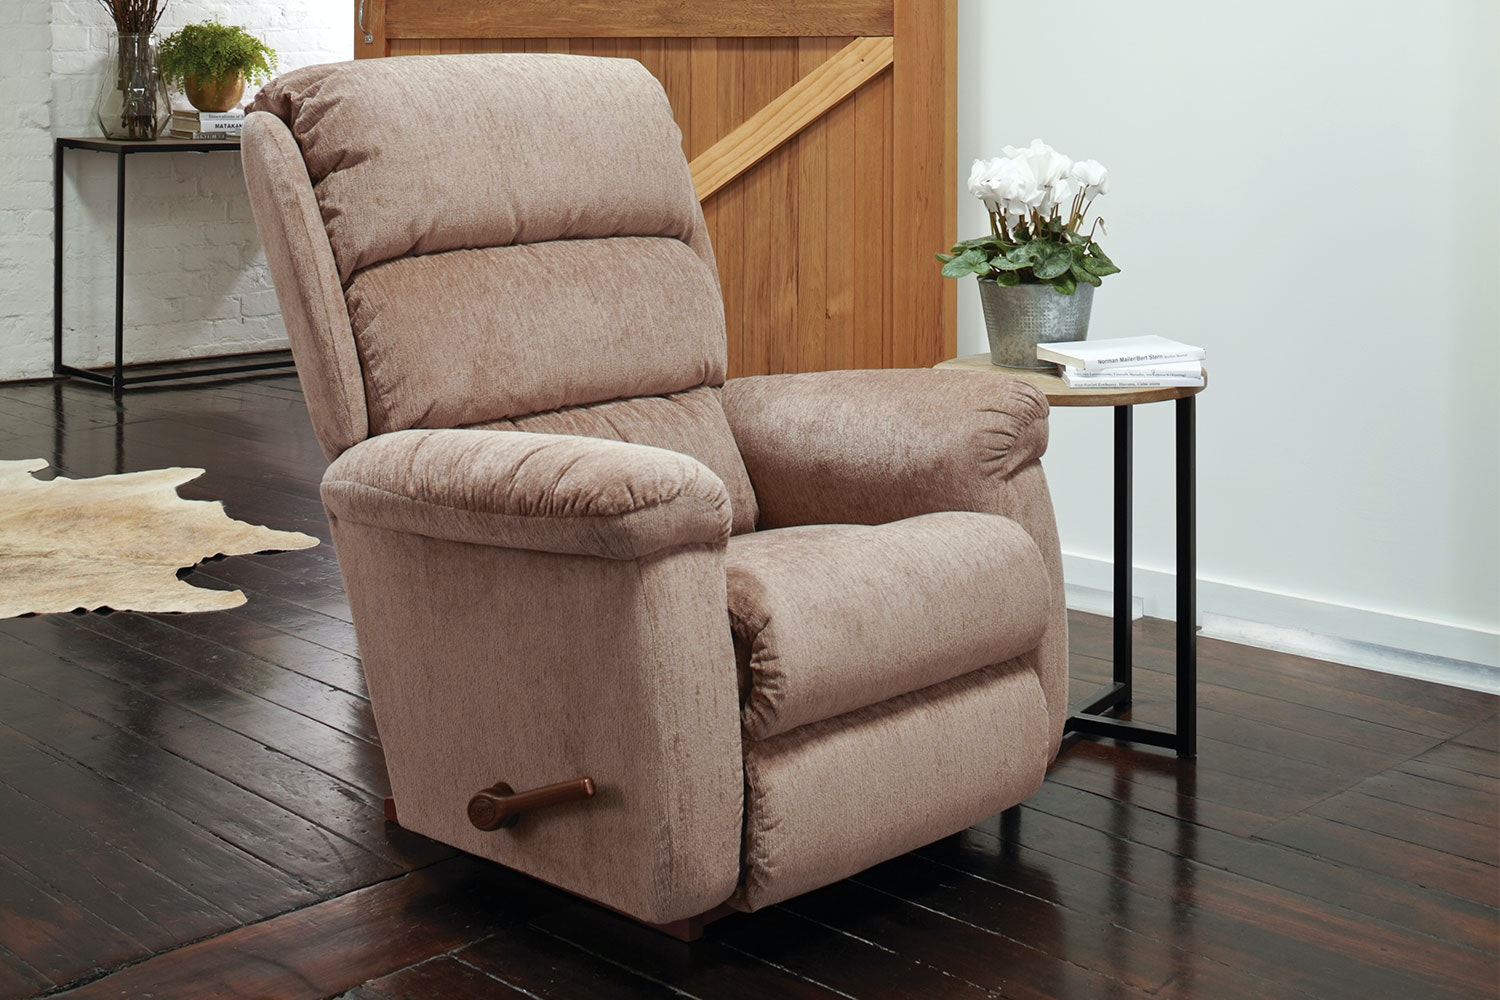 Rapids Fabric La-Z-Boy Large Recliner - Raisin - Morgan Imports